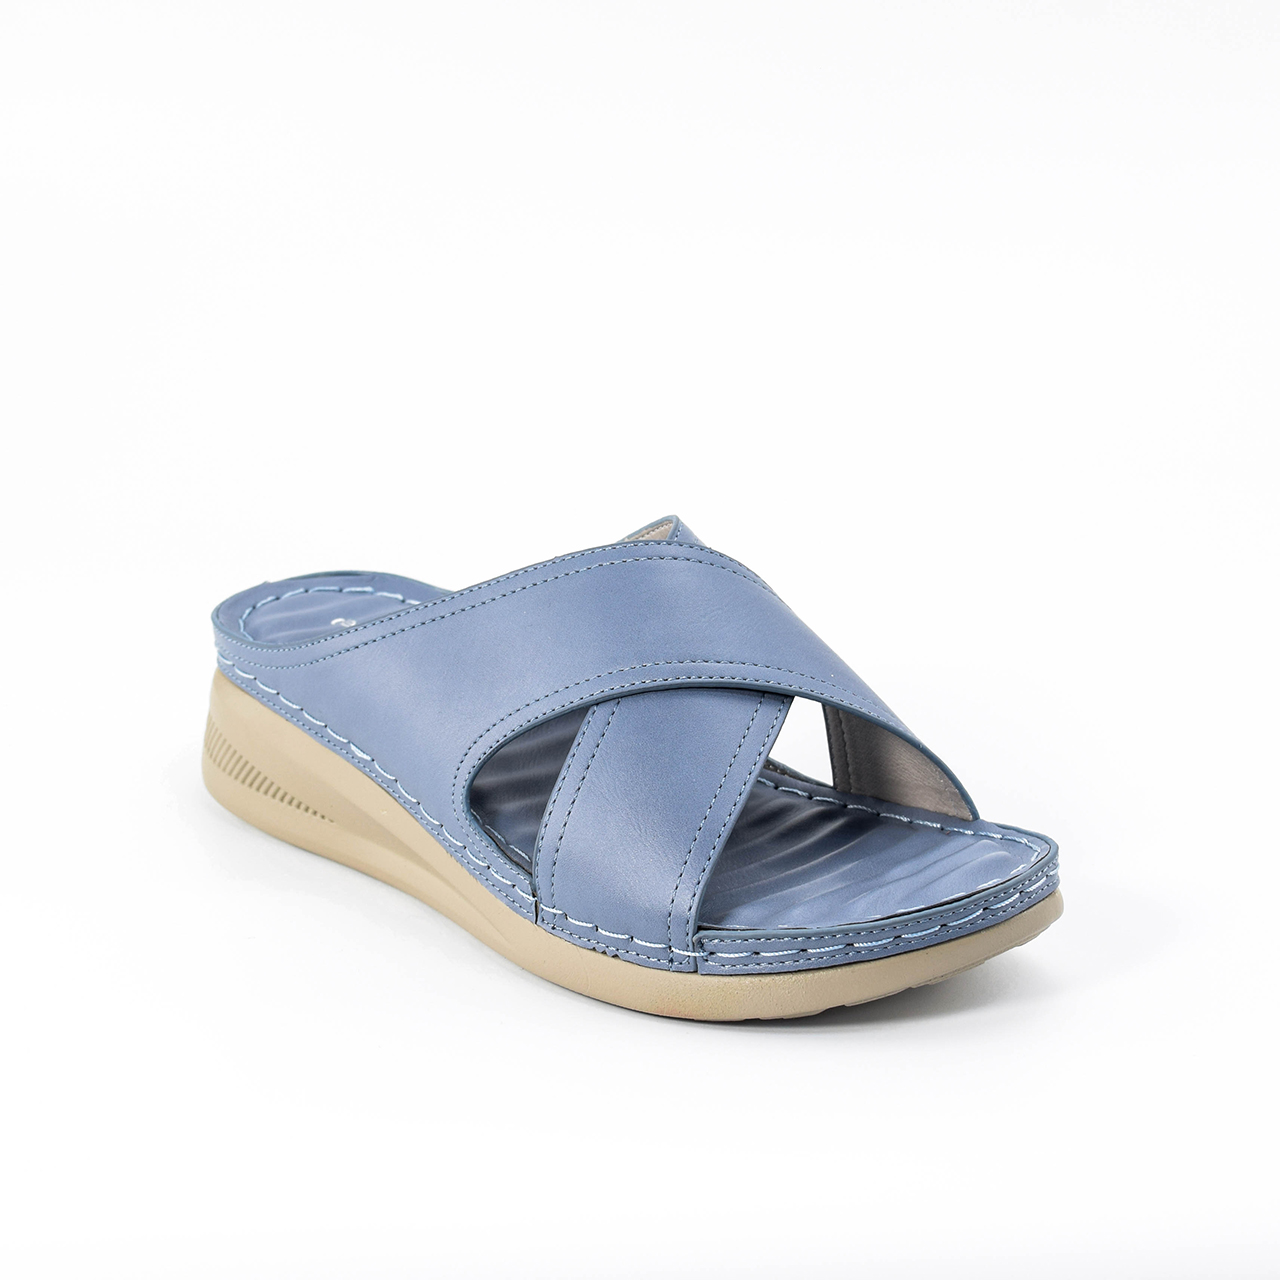 Daphne Cross Wedges in Baby Blue